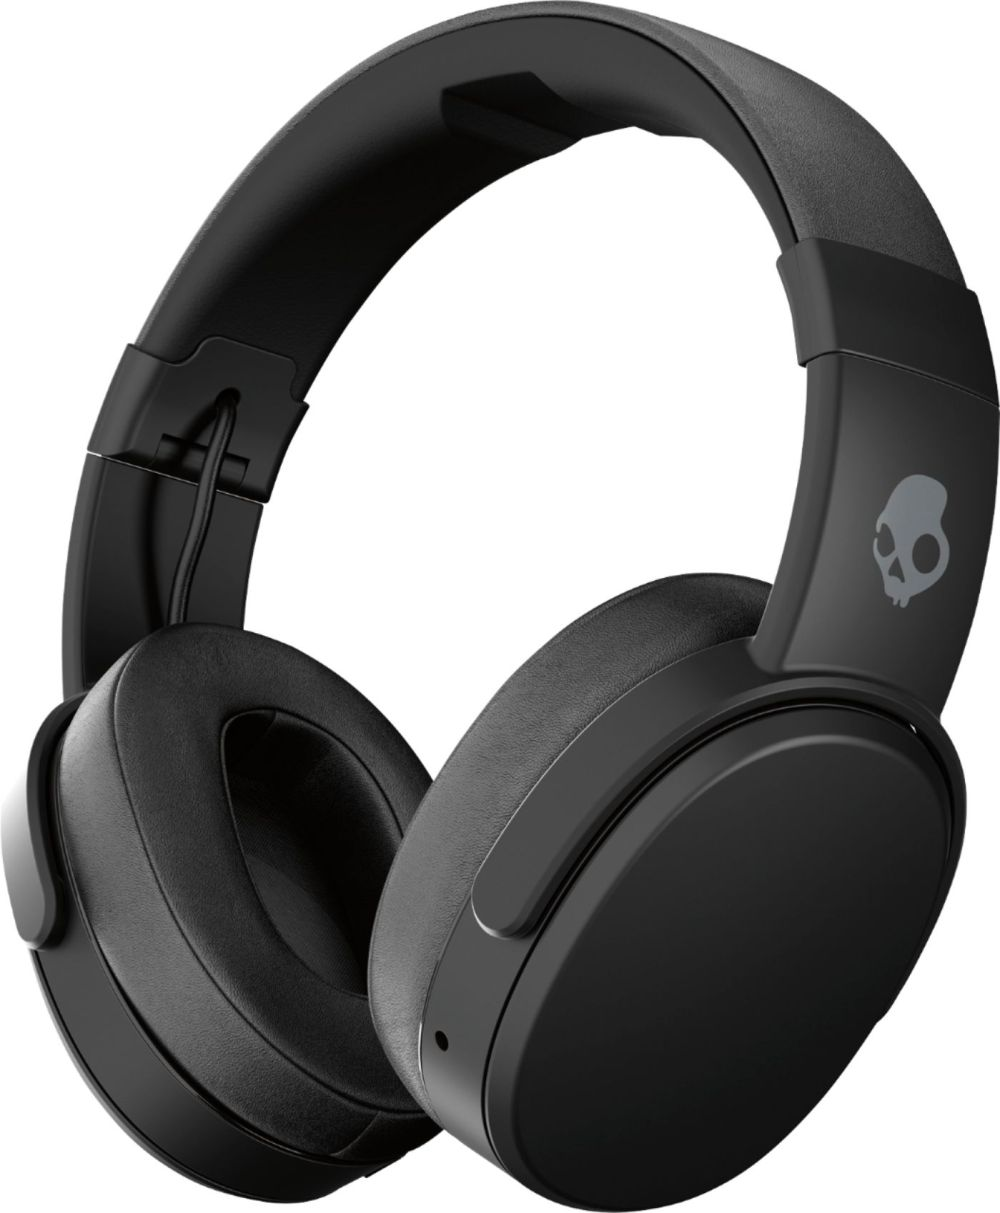 medium resolution of skullcandy crusher wireless over the ear headphones black coral s6crw k591 best buy